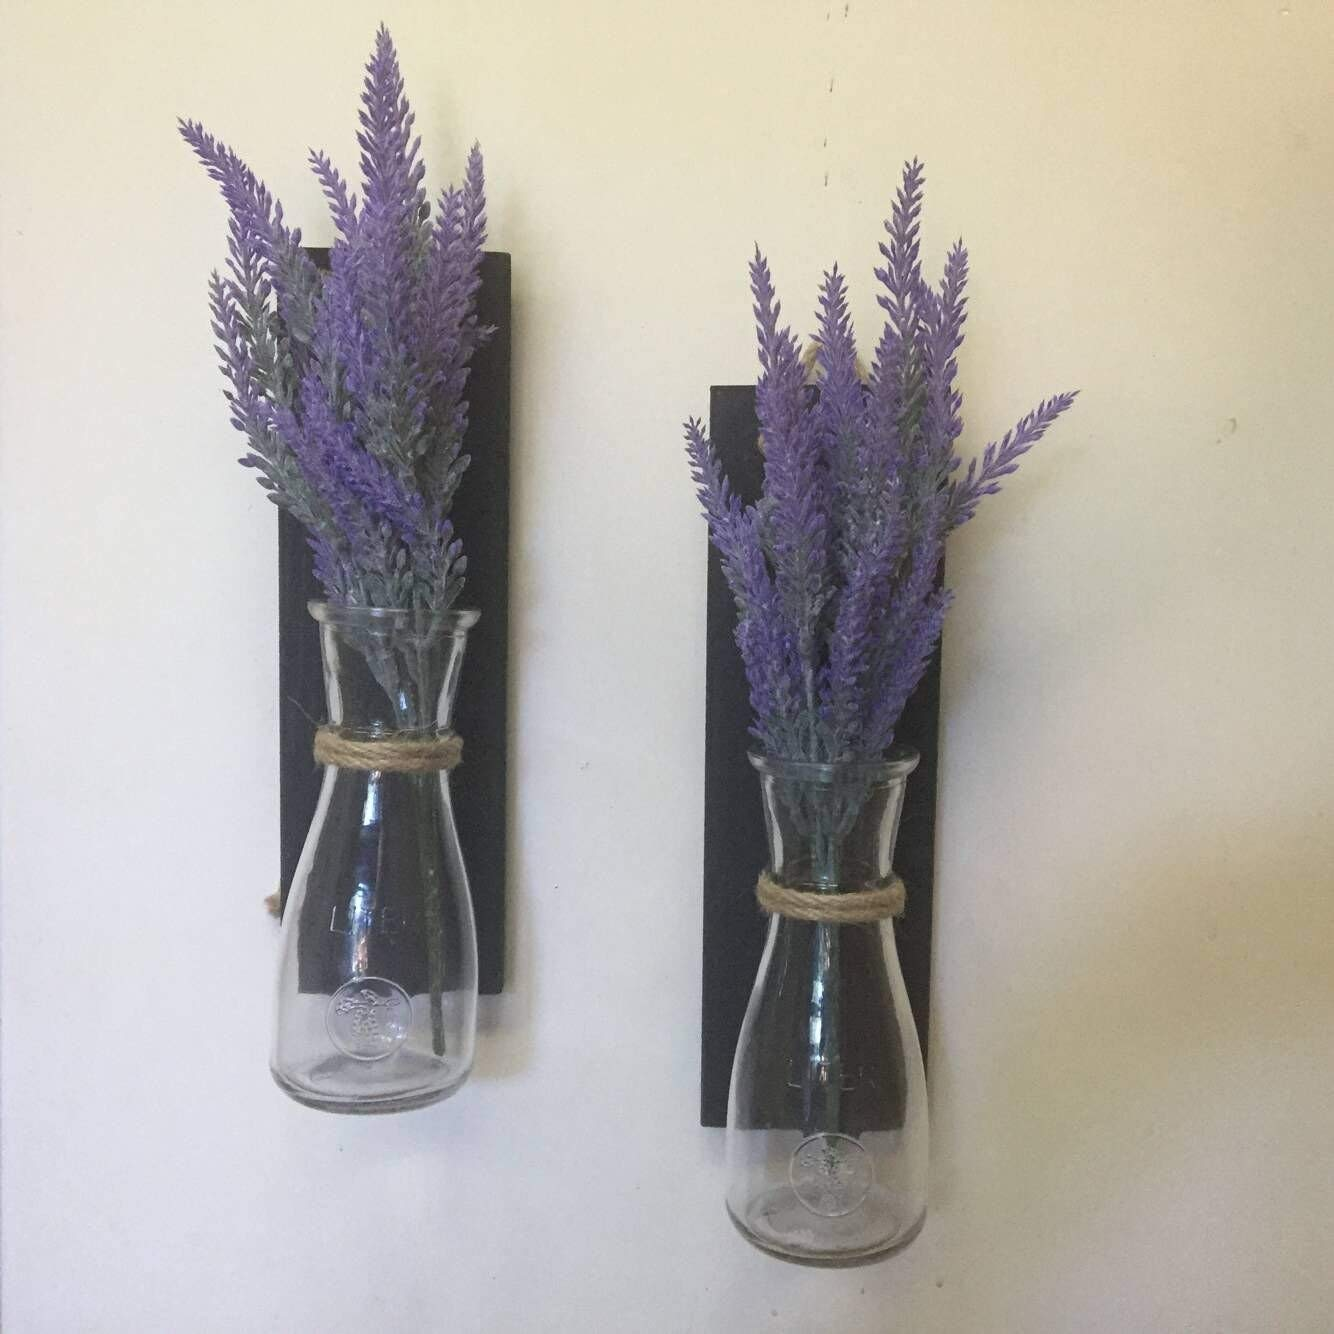 Rustic Wall Sconce, Set of 2 Hanging Mason Jar Sconces with Lavender Rustic Wall Decor Hanging Mason Jar Sconce, Black Wood Mason Jar Decor